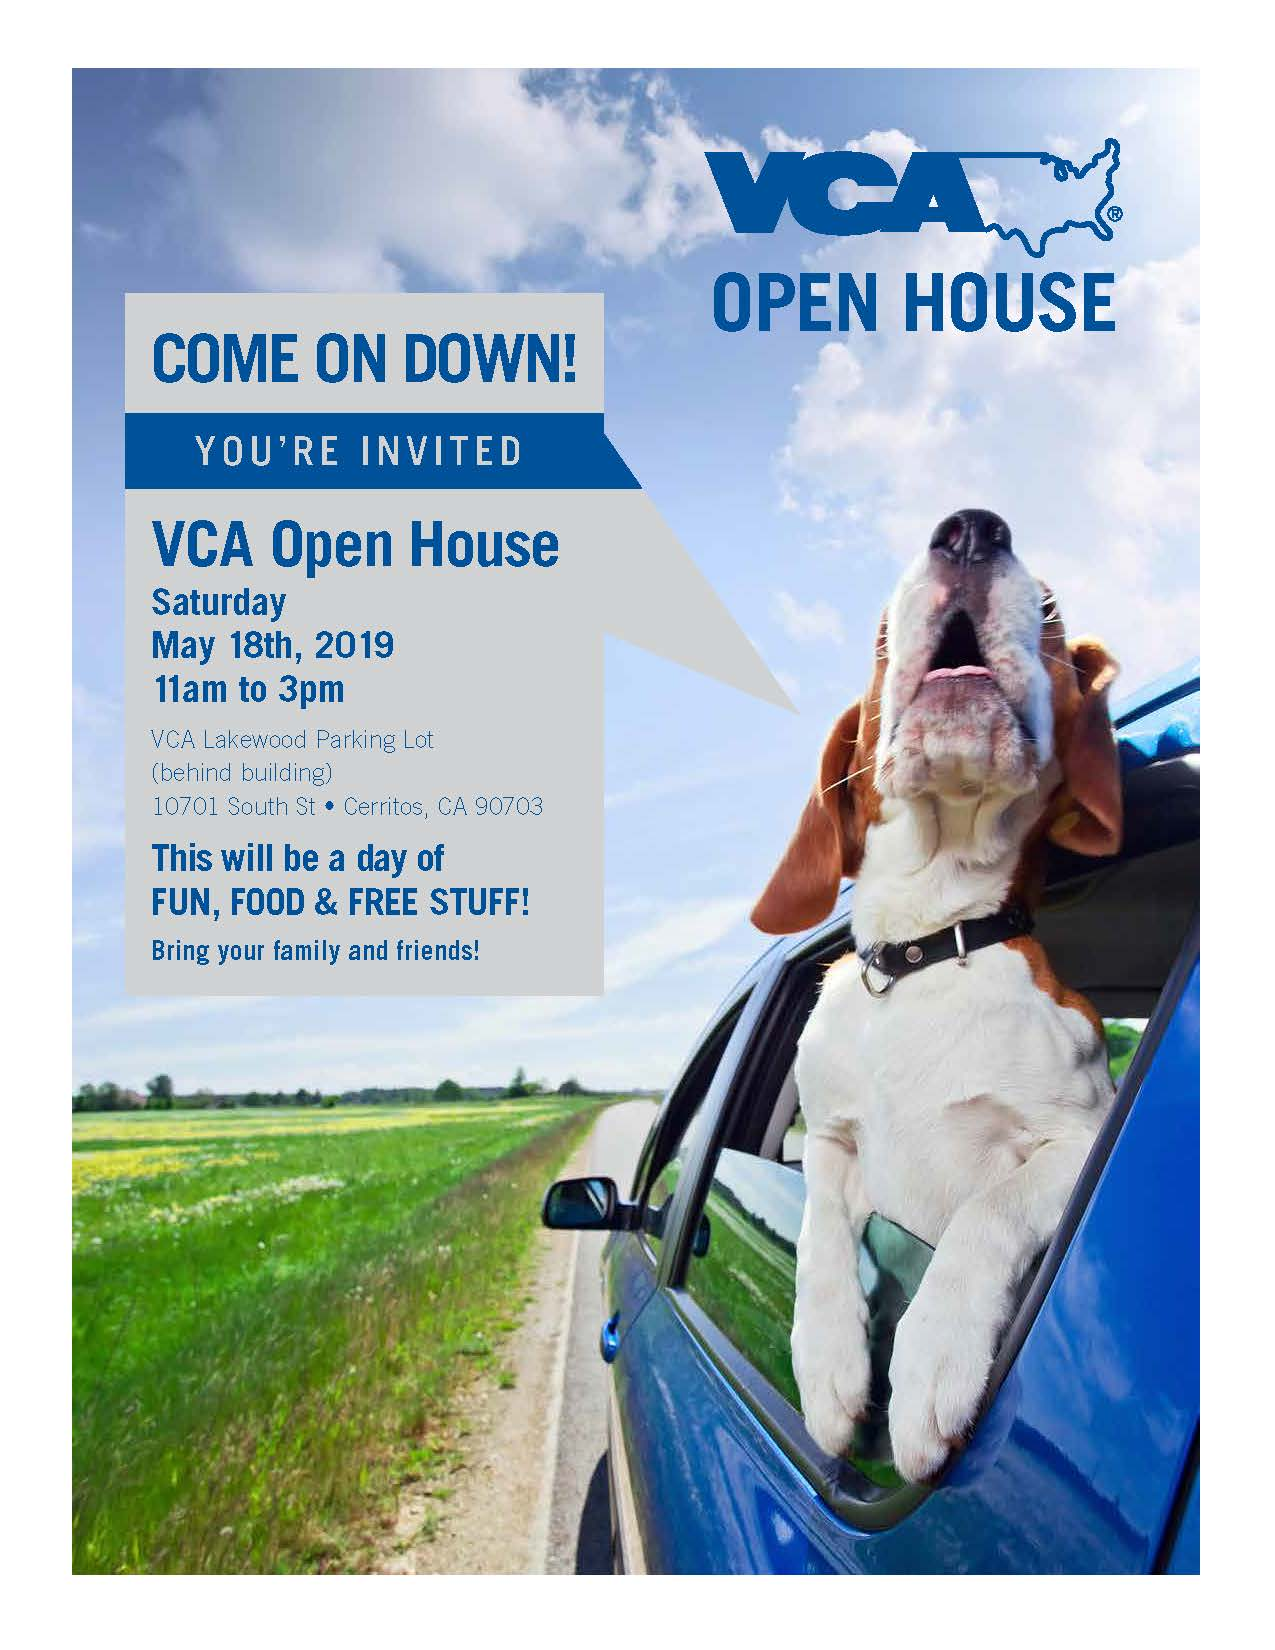 Dog sticking his head out of blue car on a country road. Text: Come on down! You're invited! VCA Open House Saturday May 18 2019 11am to 3pm VCA Lakewood Parking Lot (behind building) 10701 South St • Cerritos, CA 90703 This will be a day of FUN, FOOD & FREE STUFF! Bring your family and friends!